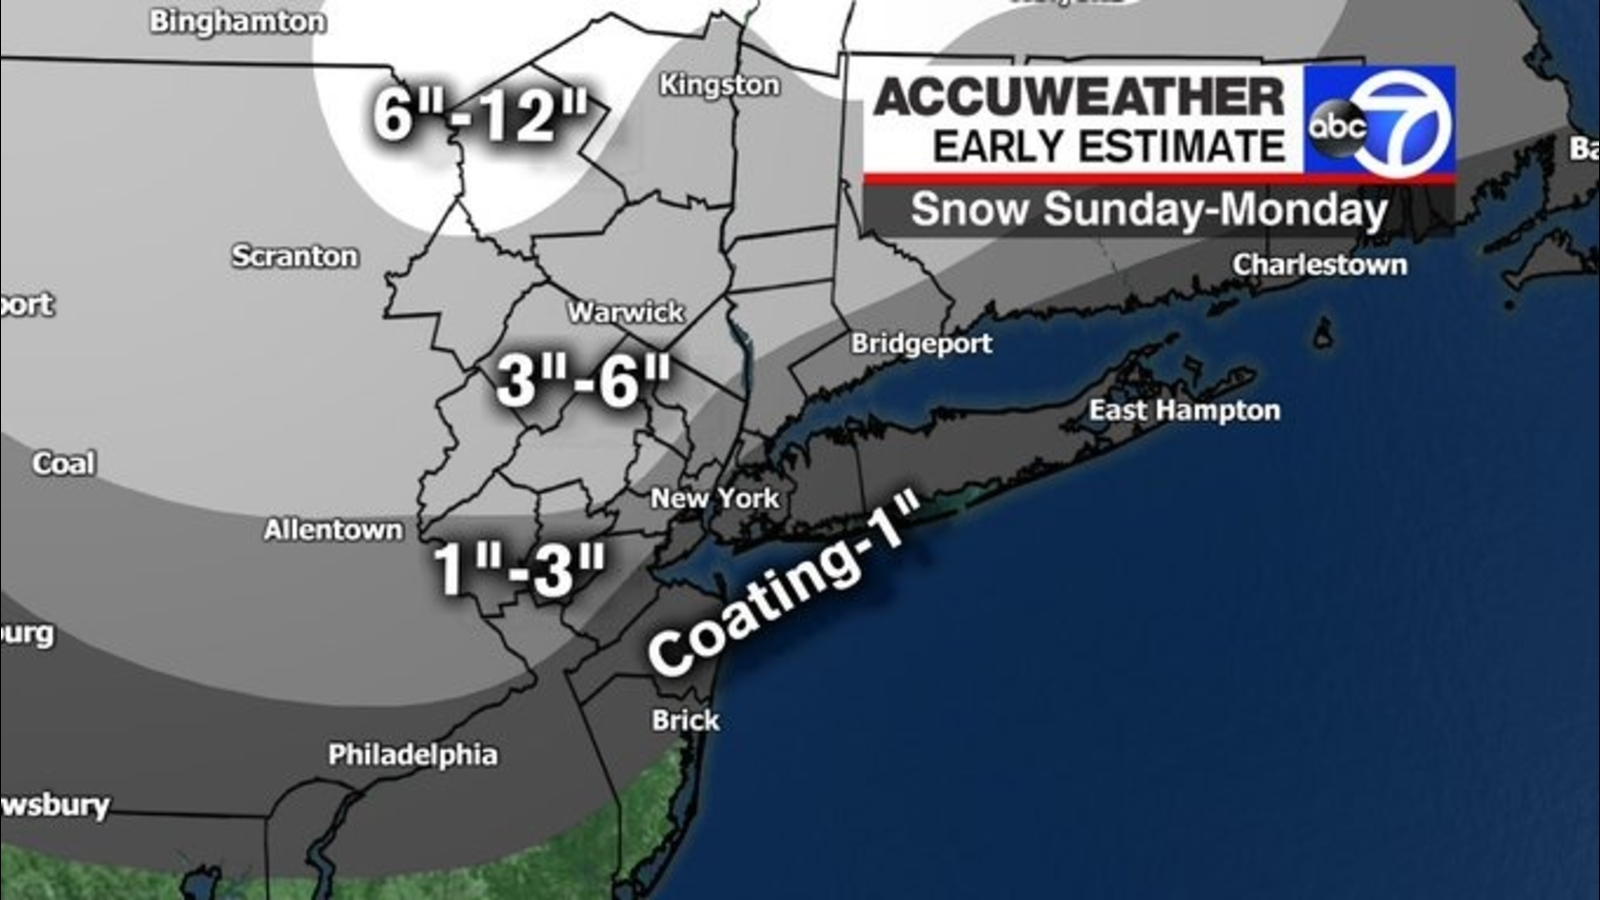 AccuWeather Alert: Winter Storm Watch, Warning issued